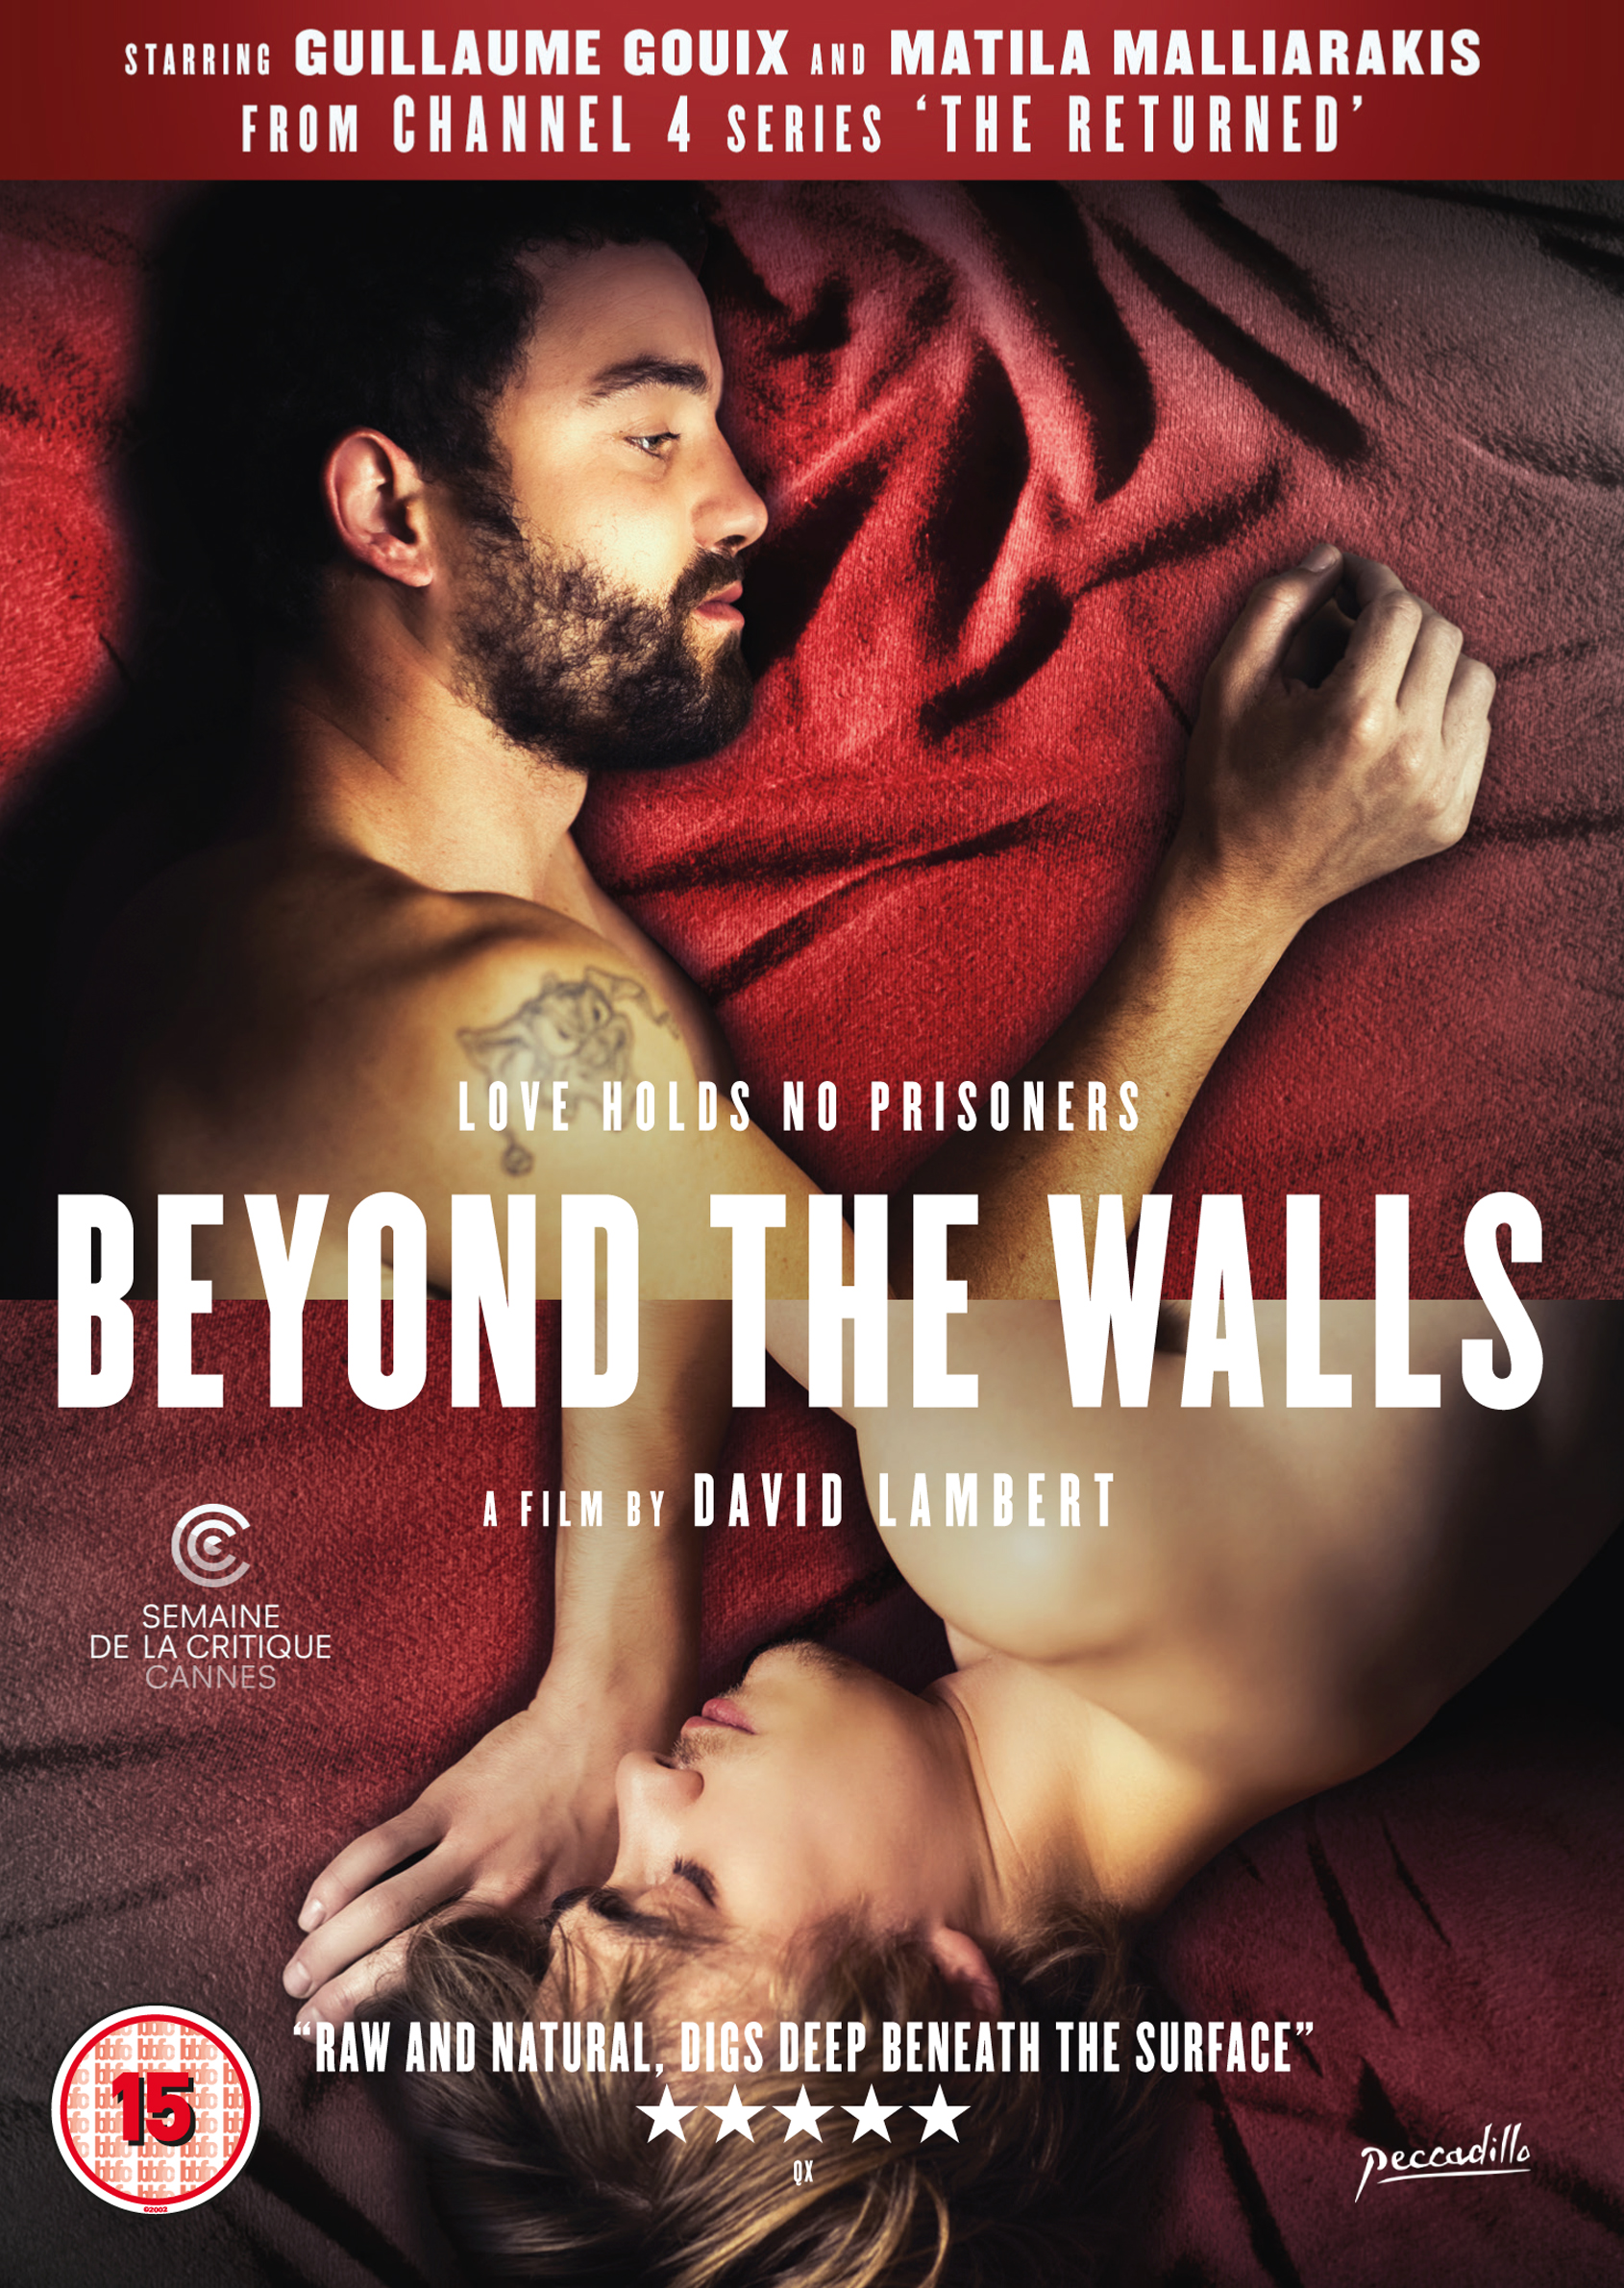 An official selection at Cannes, the BFI London Lesbian and Gay and  Stockholm film festivals, Beyond the Walls deserves its due notice.